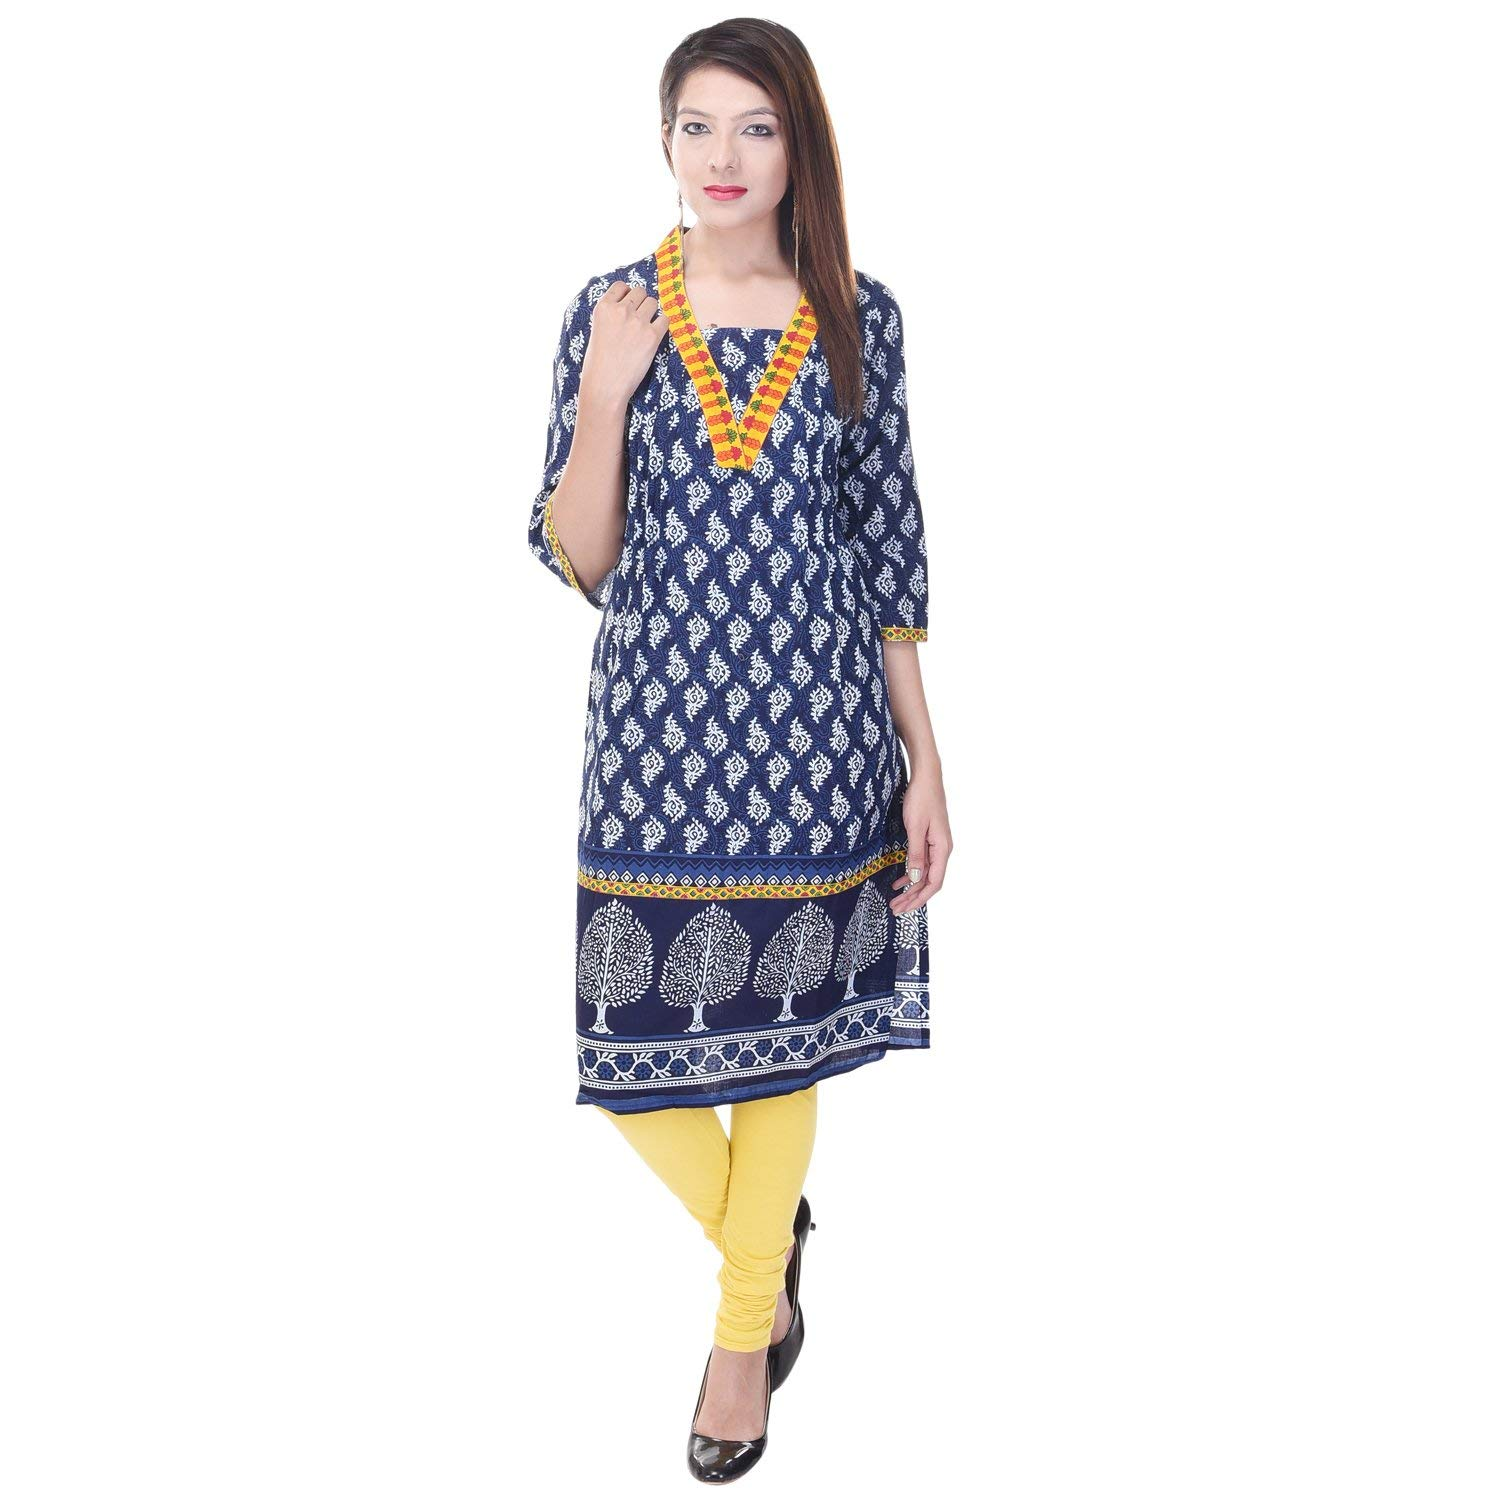 bf5176fb34 Get Quotations · Vihaan Impex Kurtis Kurtis for Women Kurtas for Women  Indian Kurti for Women